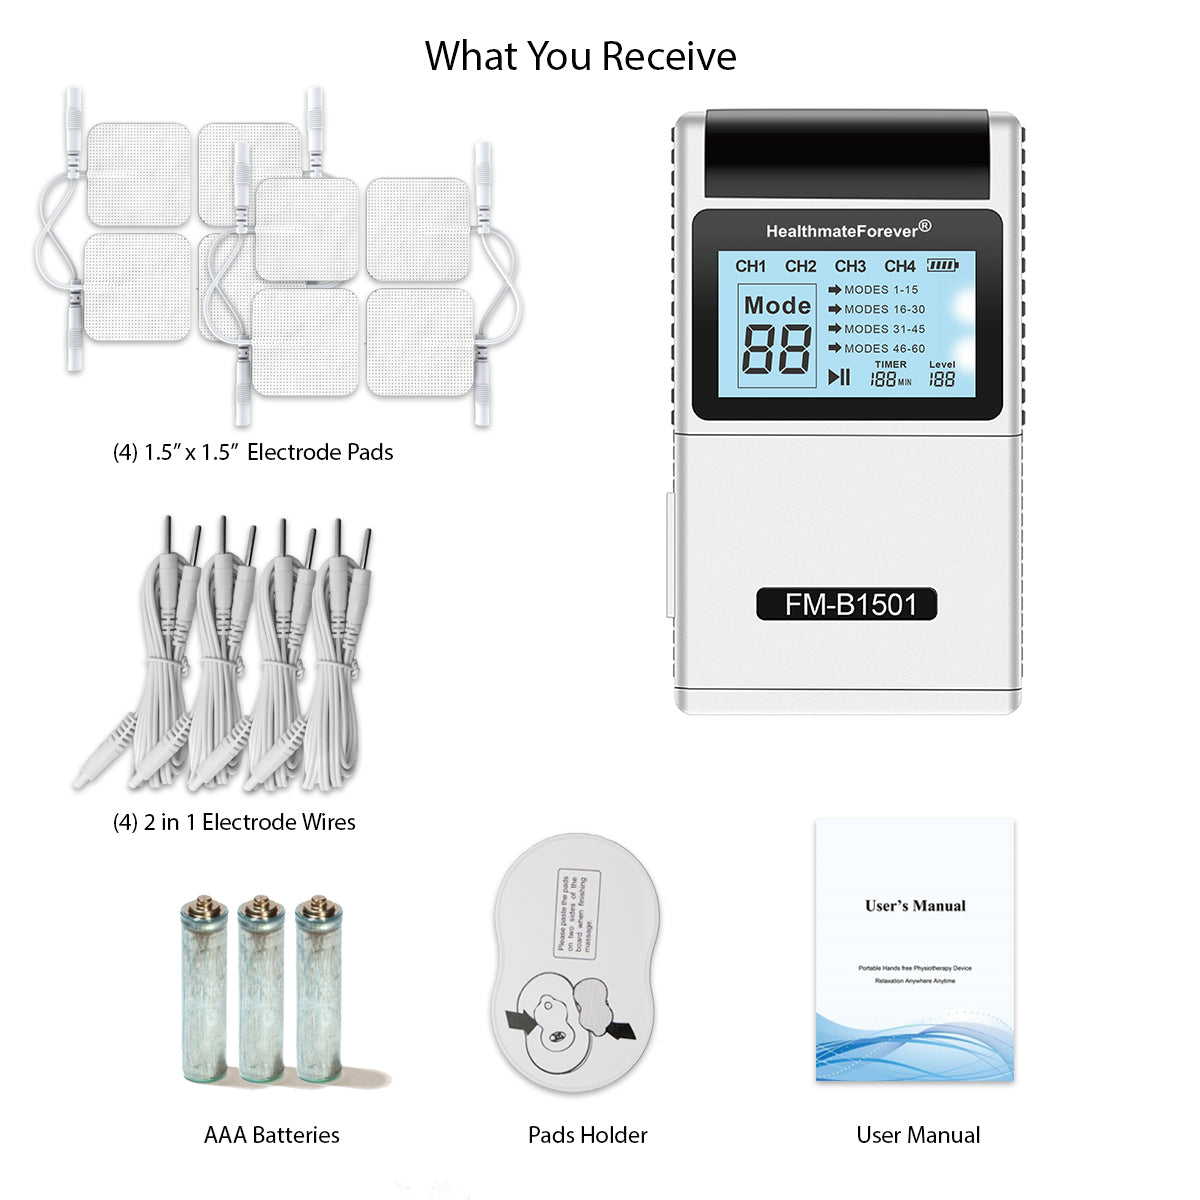 New Arrival - 2020 Version CT60AB Digital Pulse Pain Relief TENS UNIT 4 Outputs - 2 Year Warranty - HealthmateForever